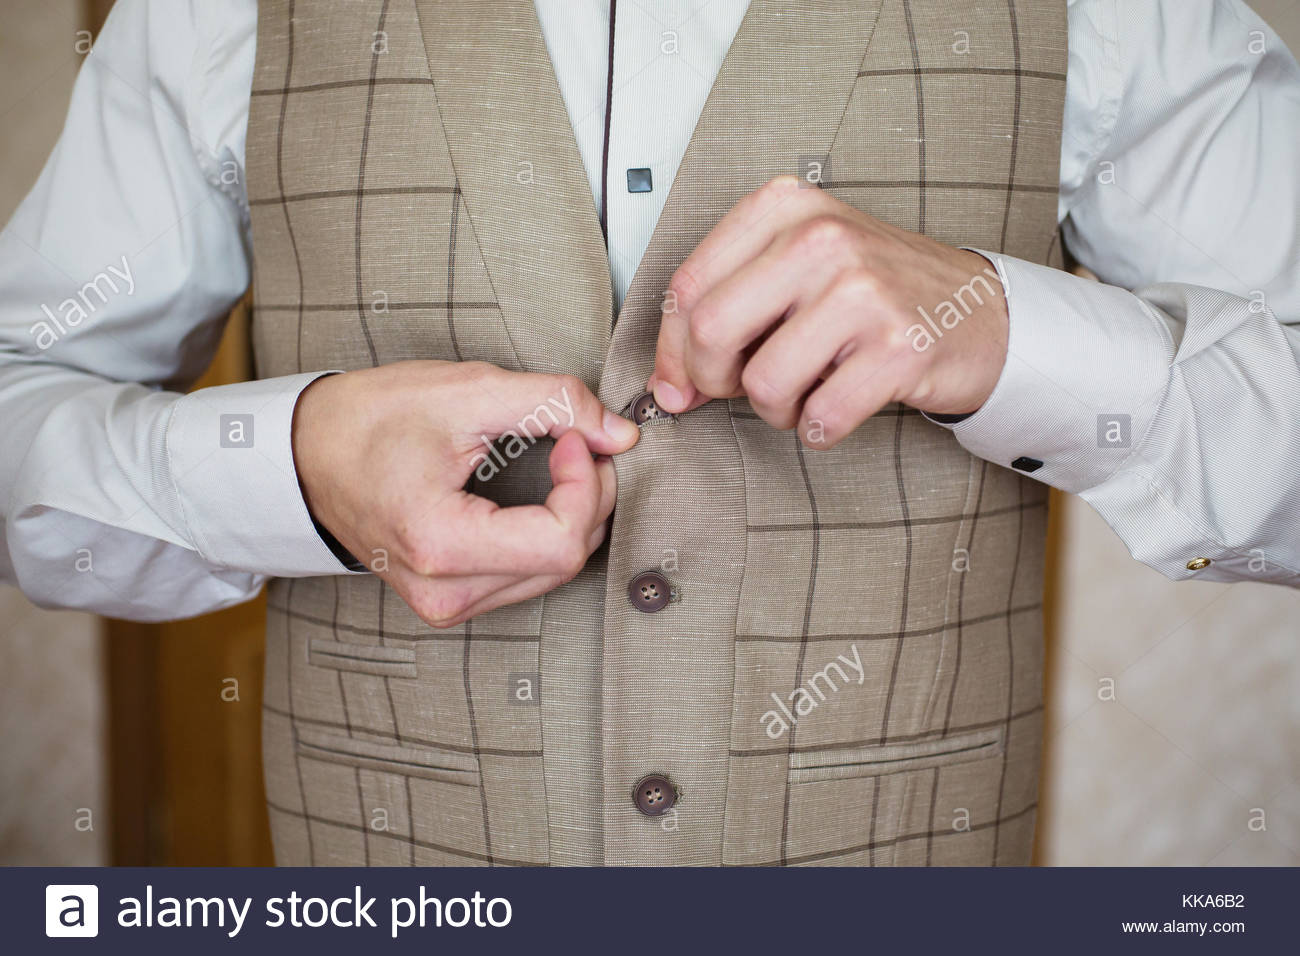 Man buttoning his waistcoat on. Men's style. Professions. Preparing to work on an appointment. - Stock Image